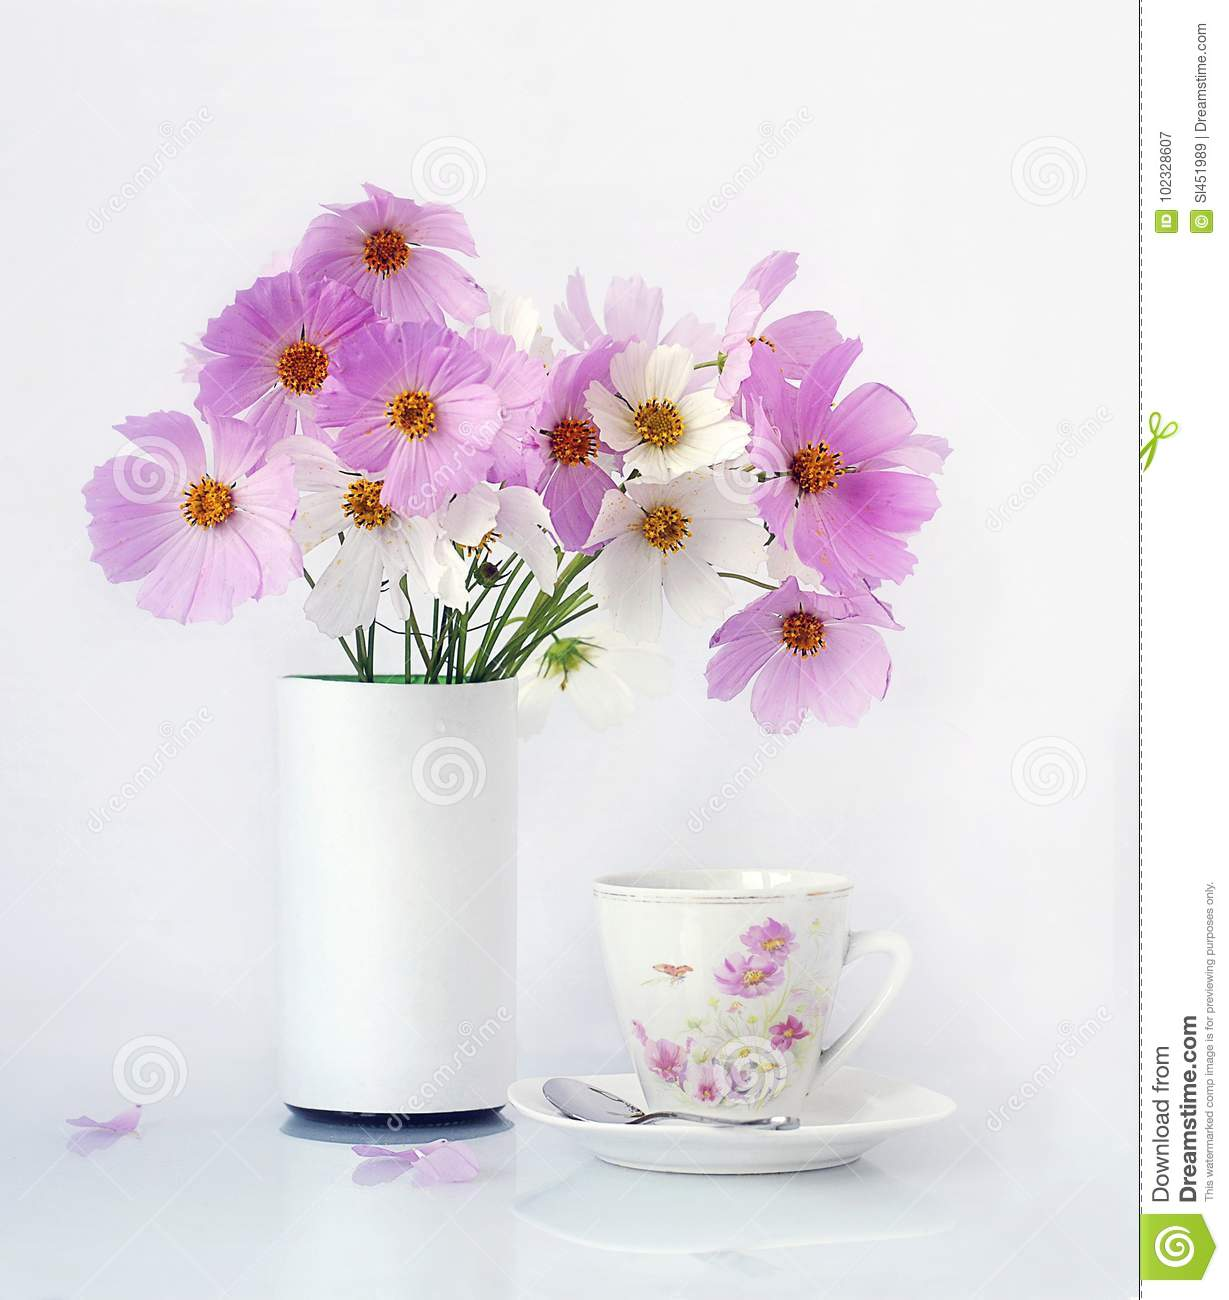 bouquet of pink flowers in a vase and a cup of coffee on a white